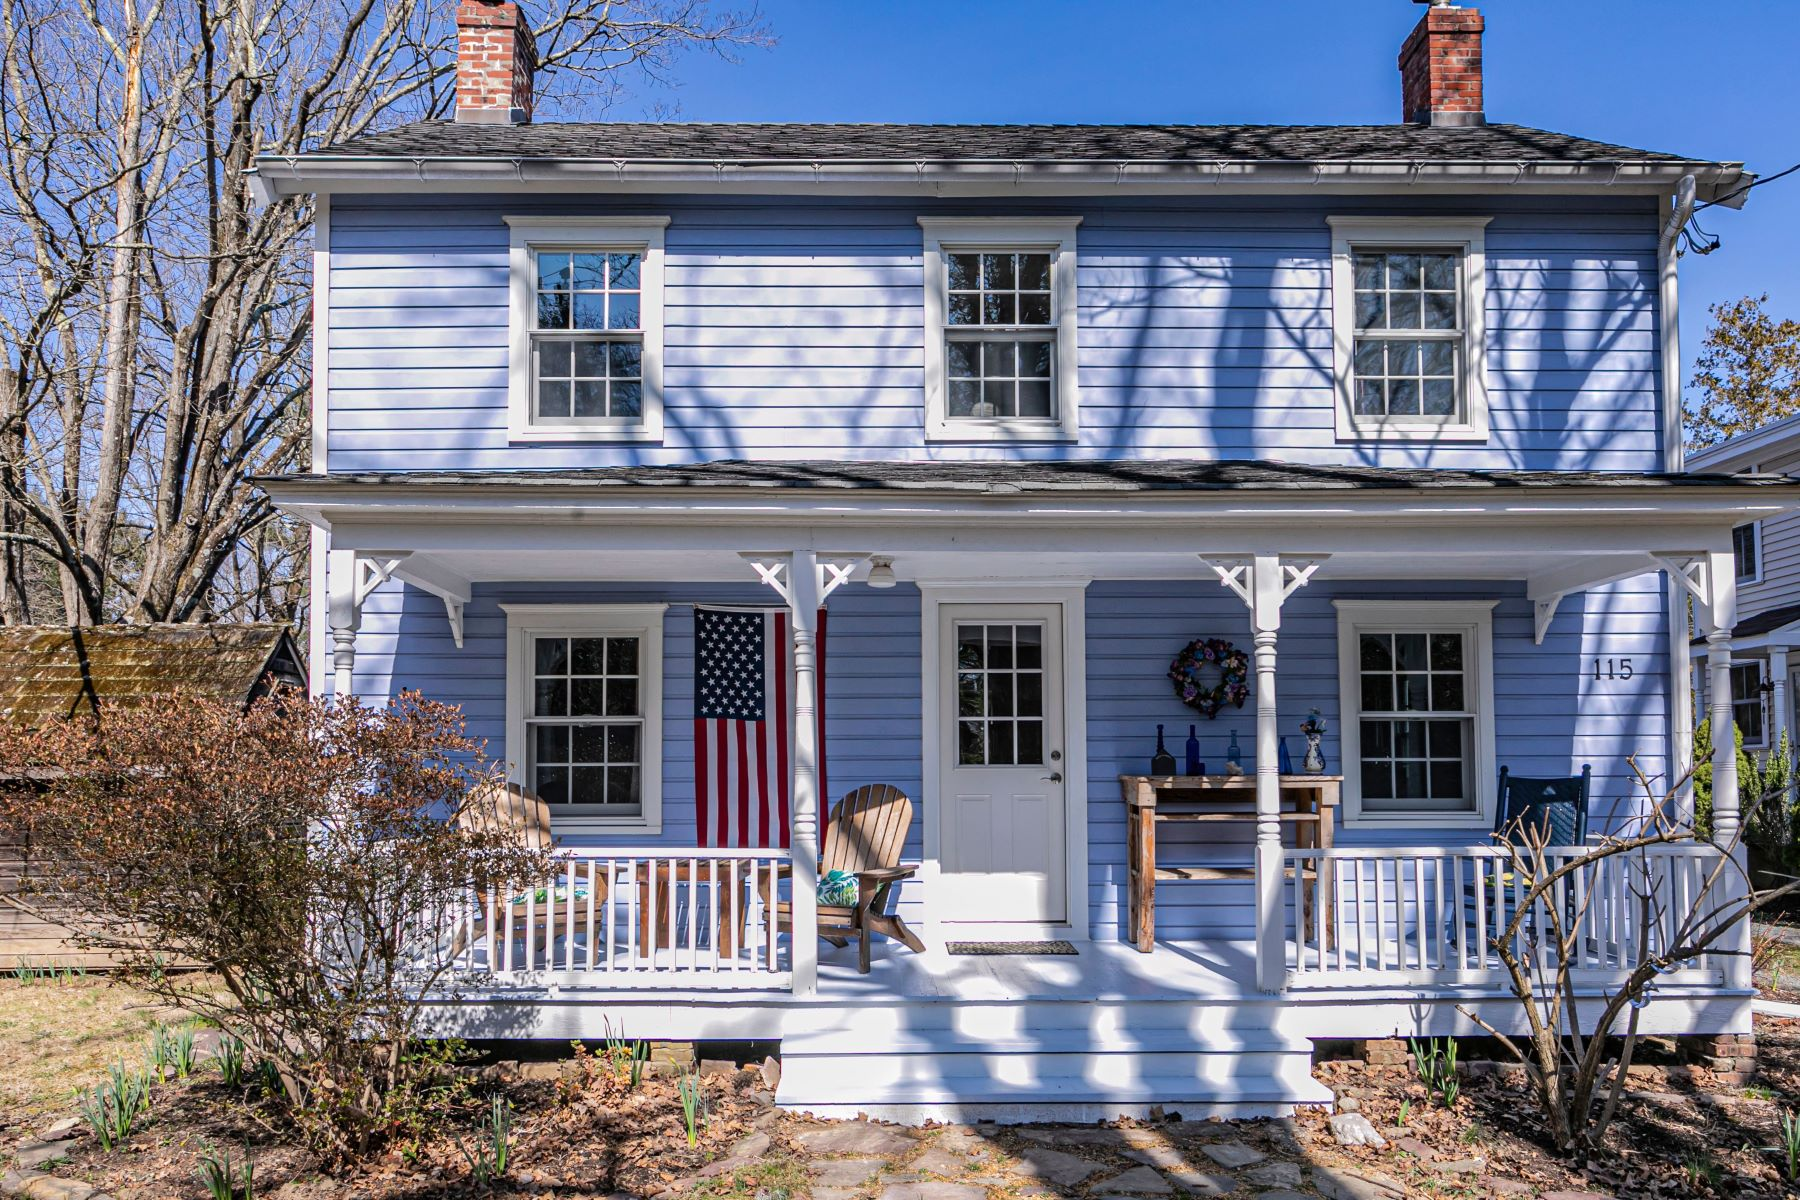 A True Colonial Home Full of Cheerful Surprises 115 Mountain Avenue, Princeton, New Jersey 08540 Stati Uniti